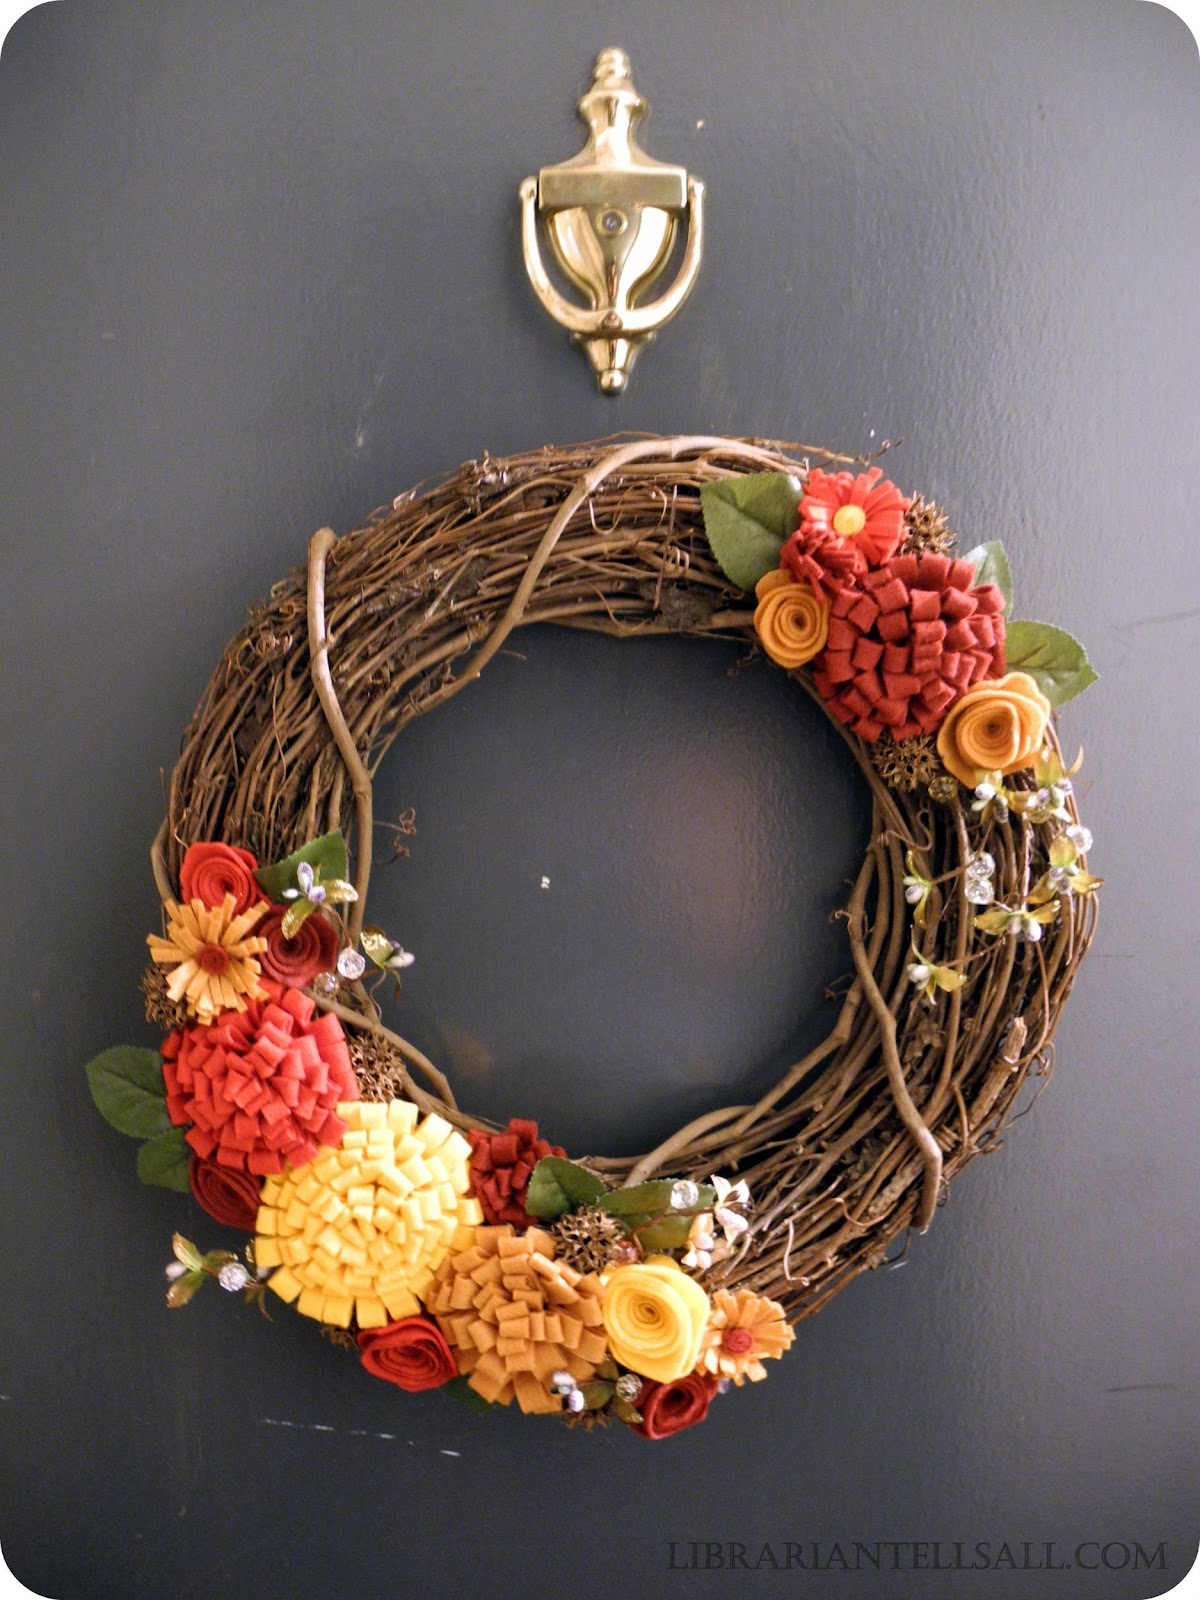 Top Librarian Tells All: I Love Fall! Autumn Grapevine Wreath with  LH33